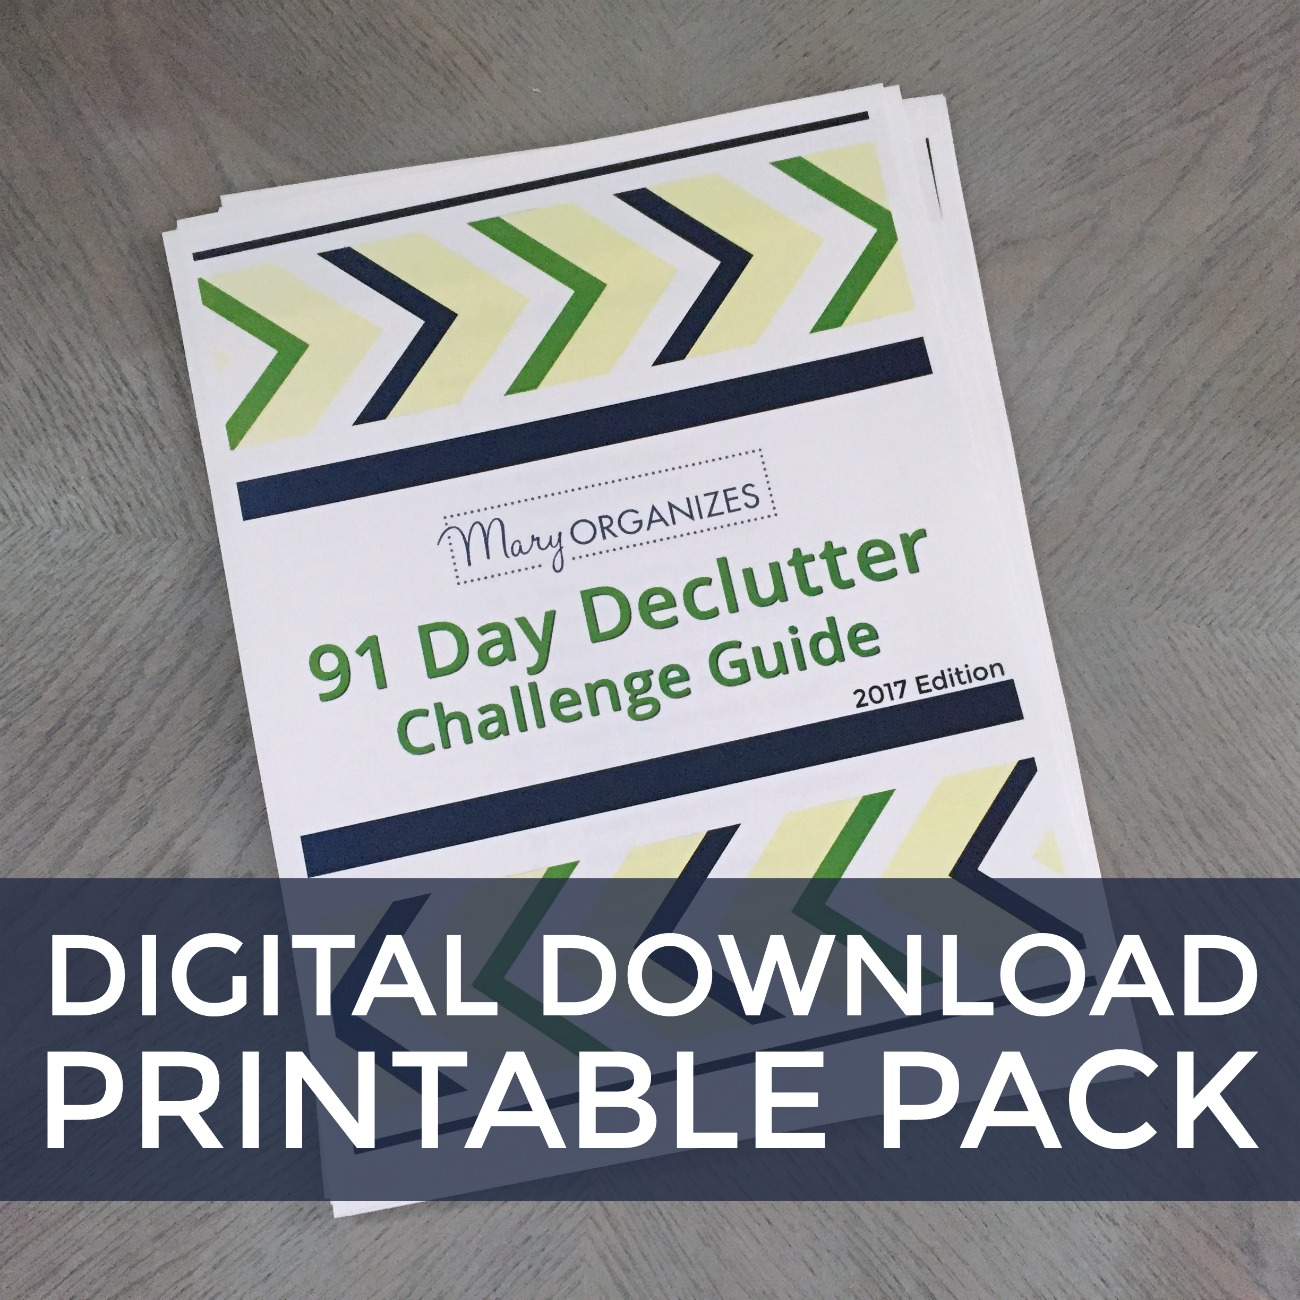 digital-download-printable-pack